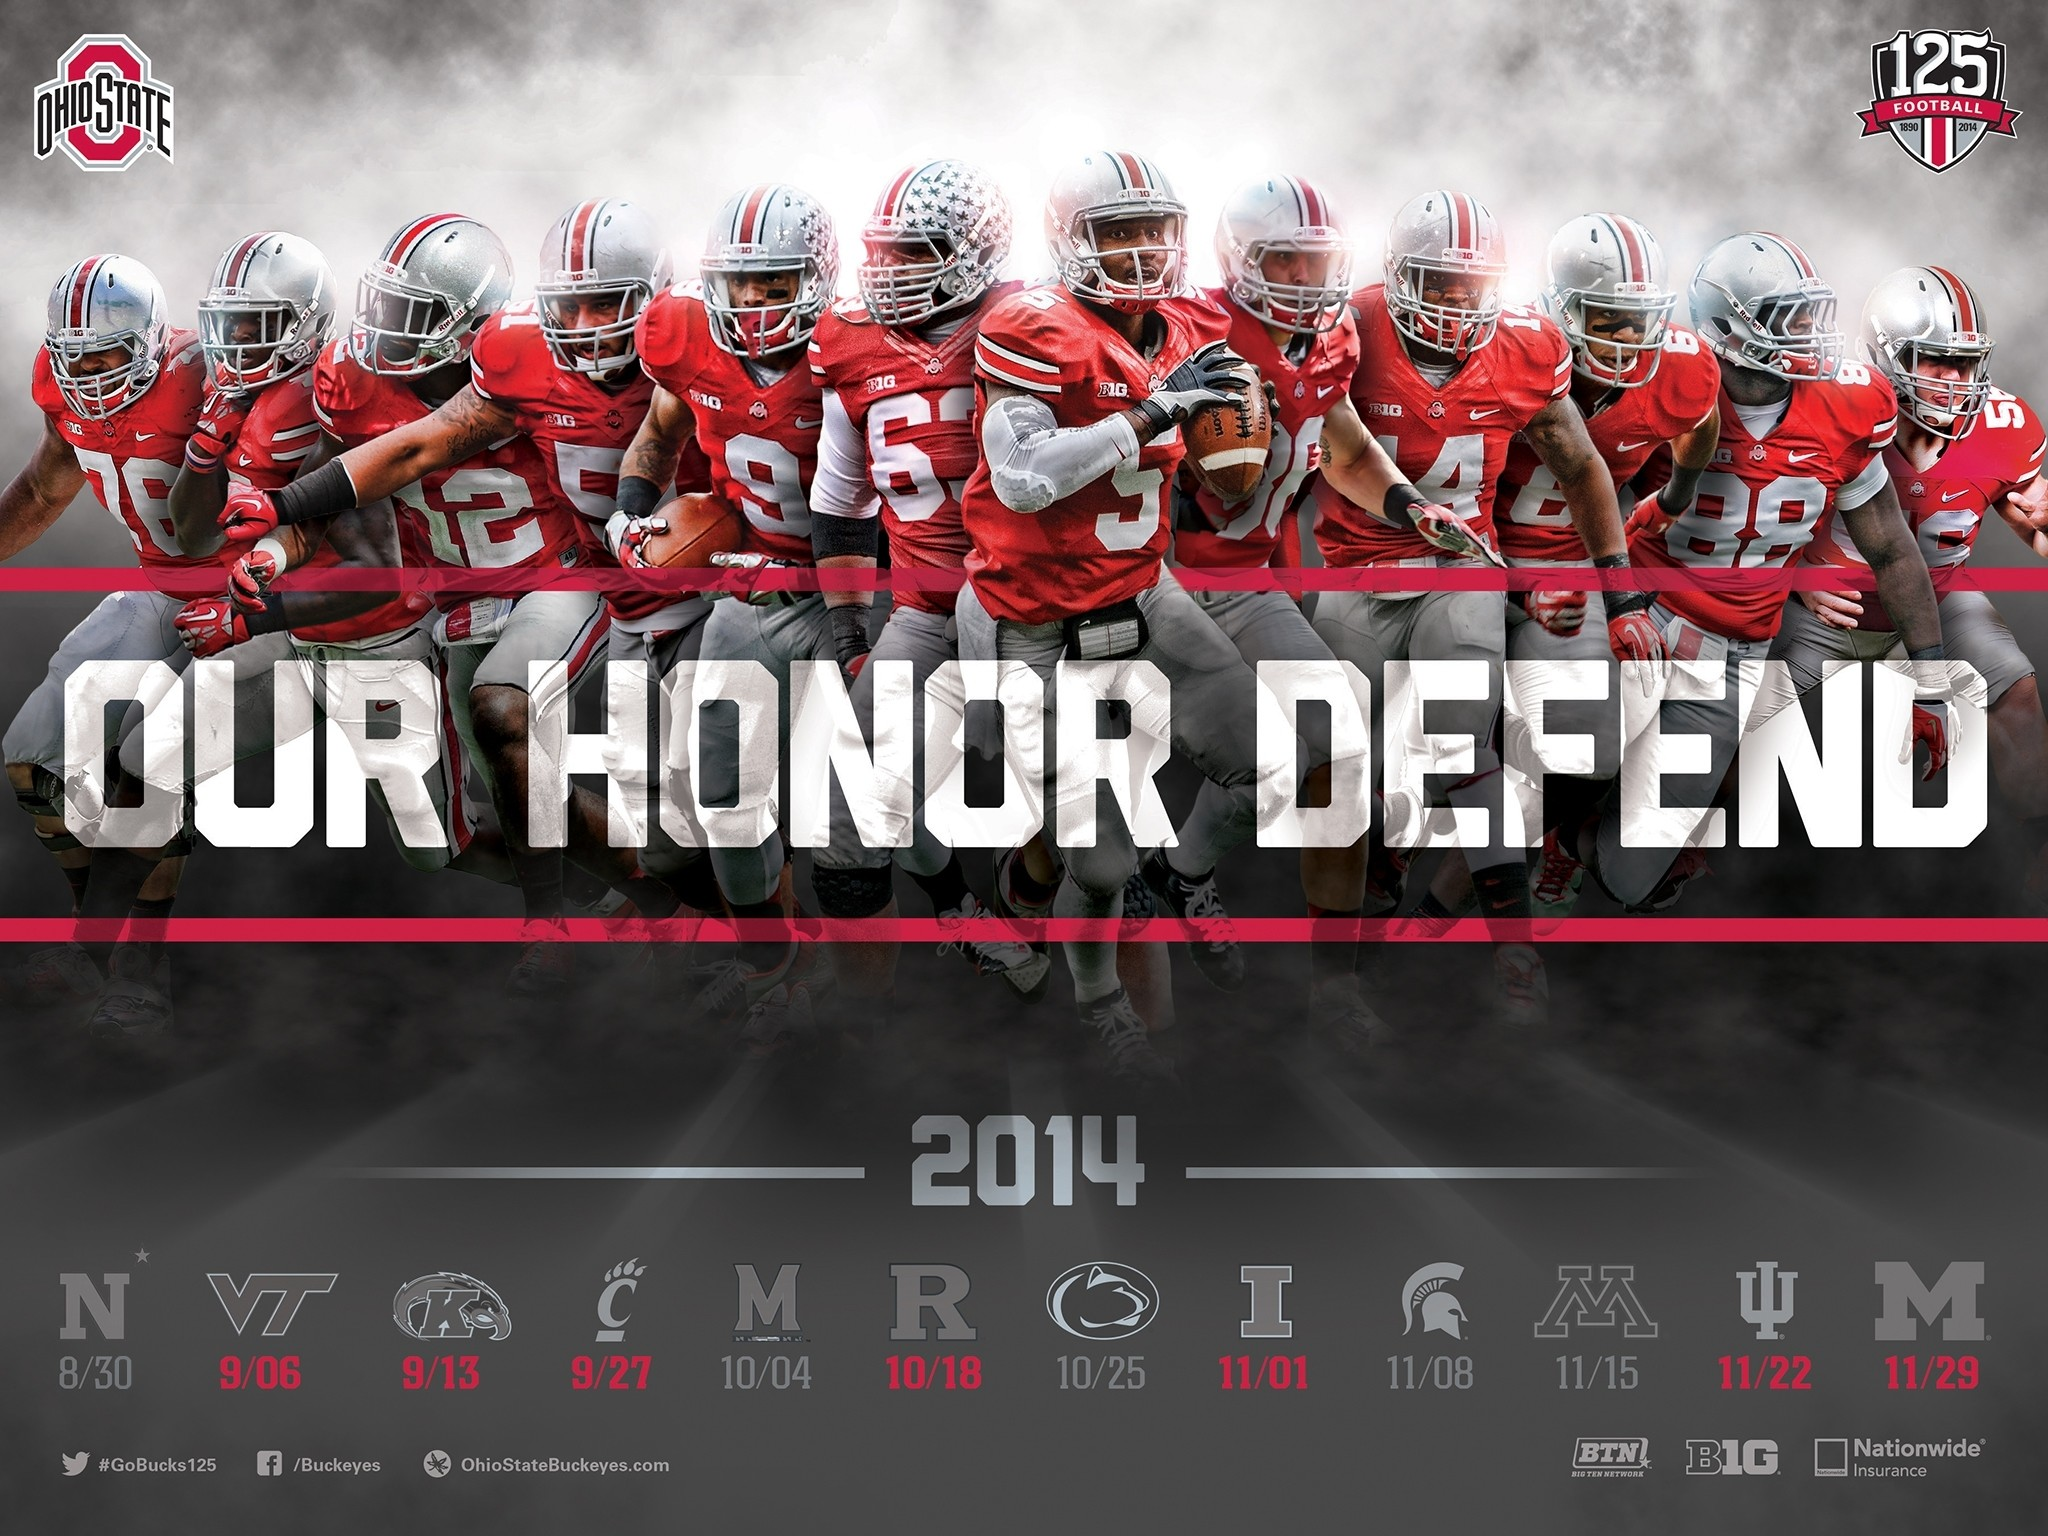 2048x1536 Title : download the ohio state football 2014 schedule poster for printing.  Dimension : 2048 x 1536. File Type : JPG/JPEG